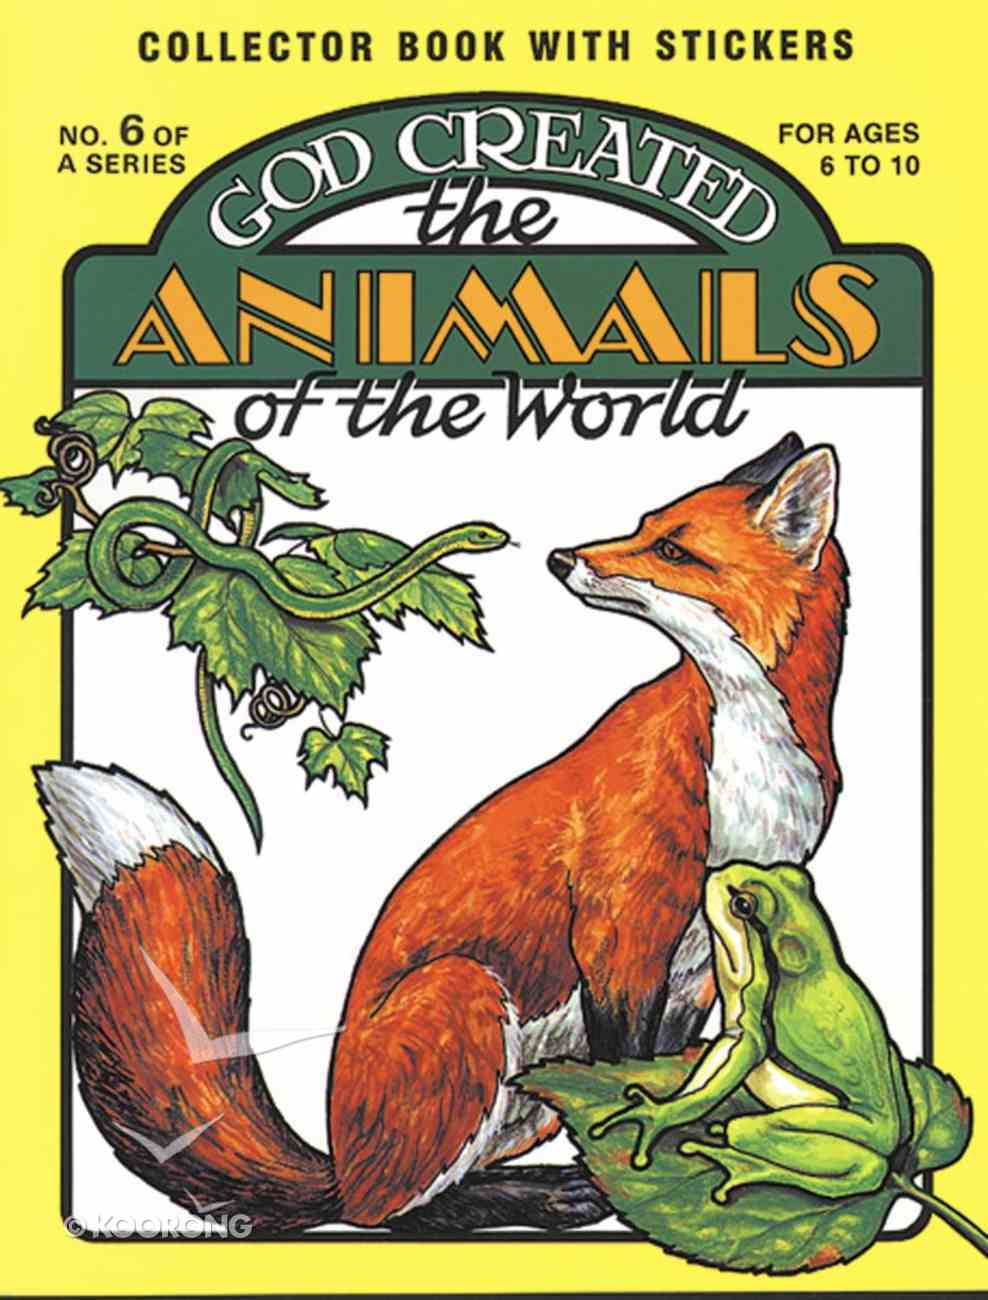 God Created the Animals of the World Sticker Book Paperback